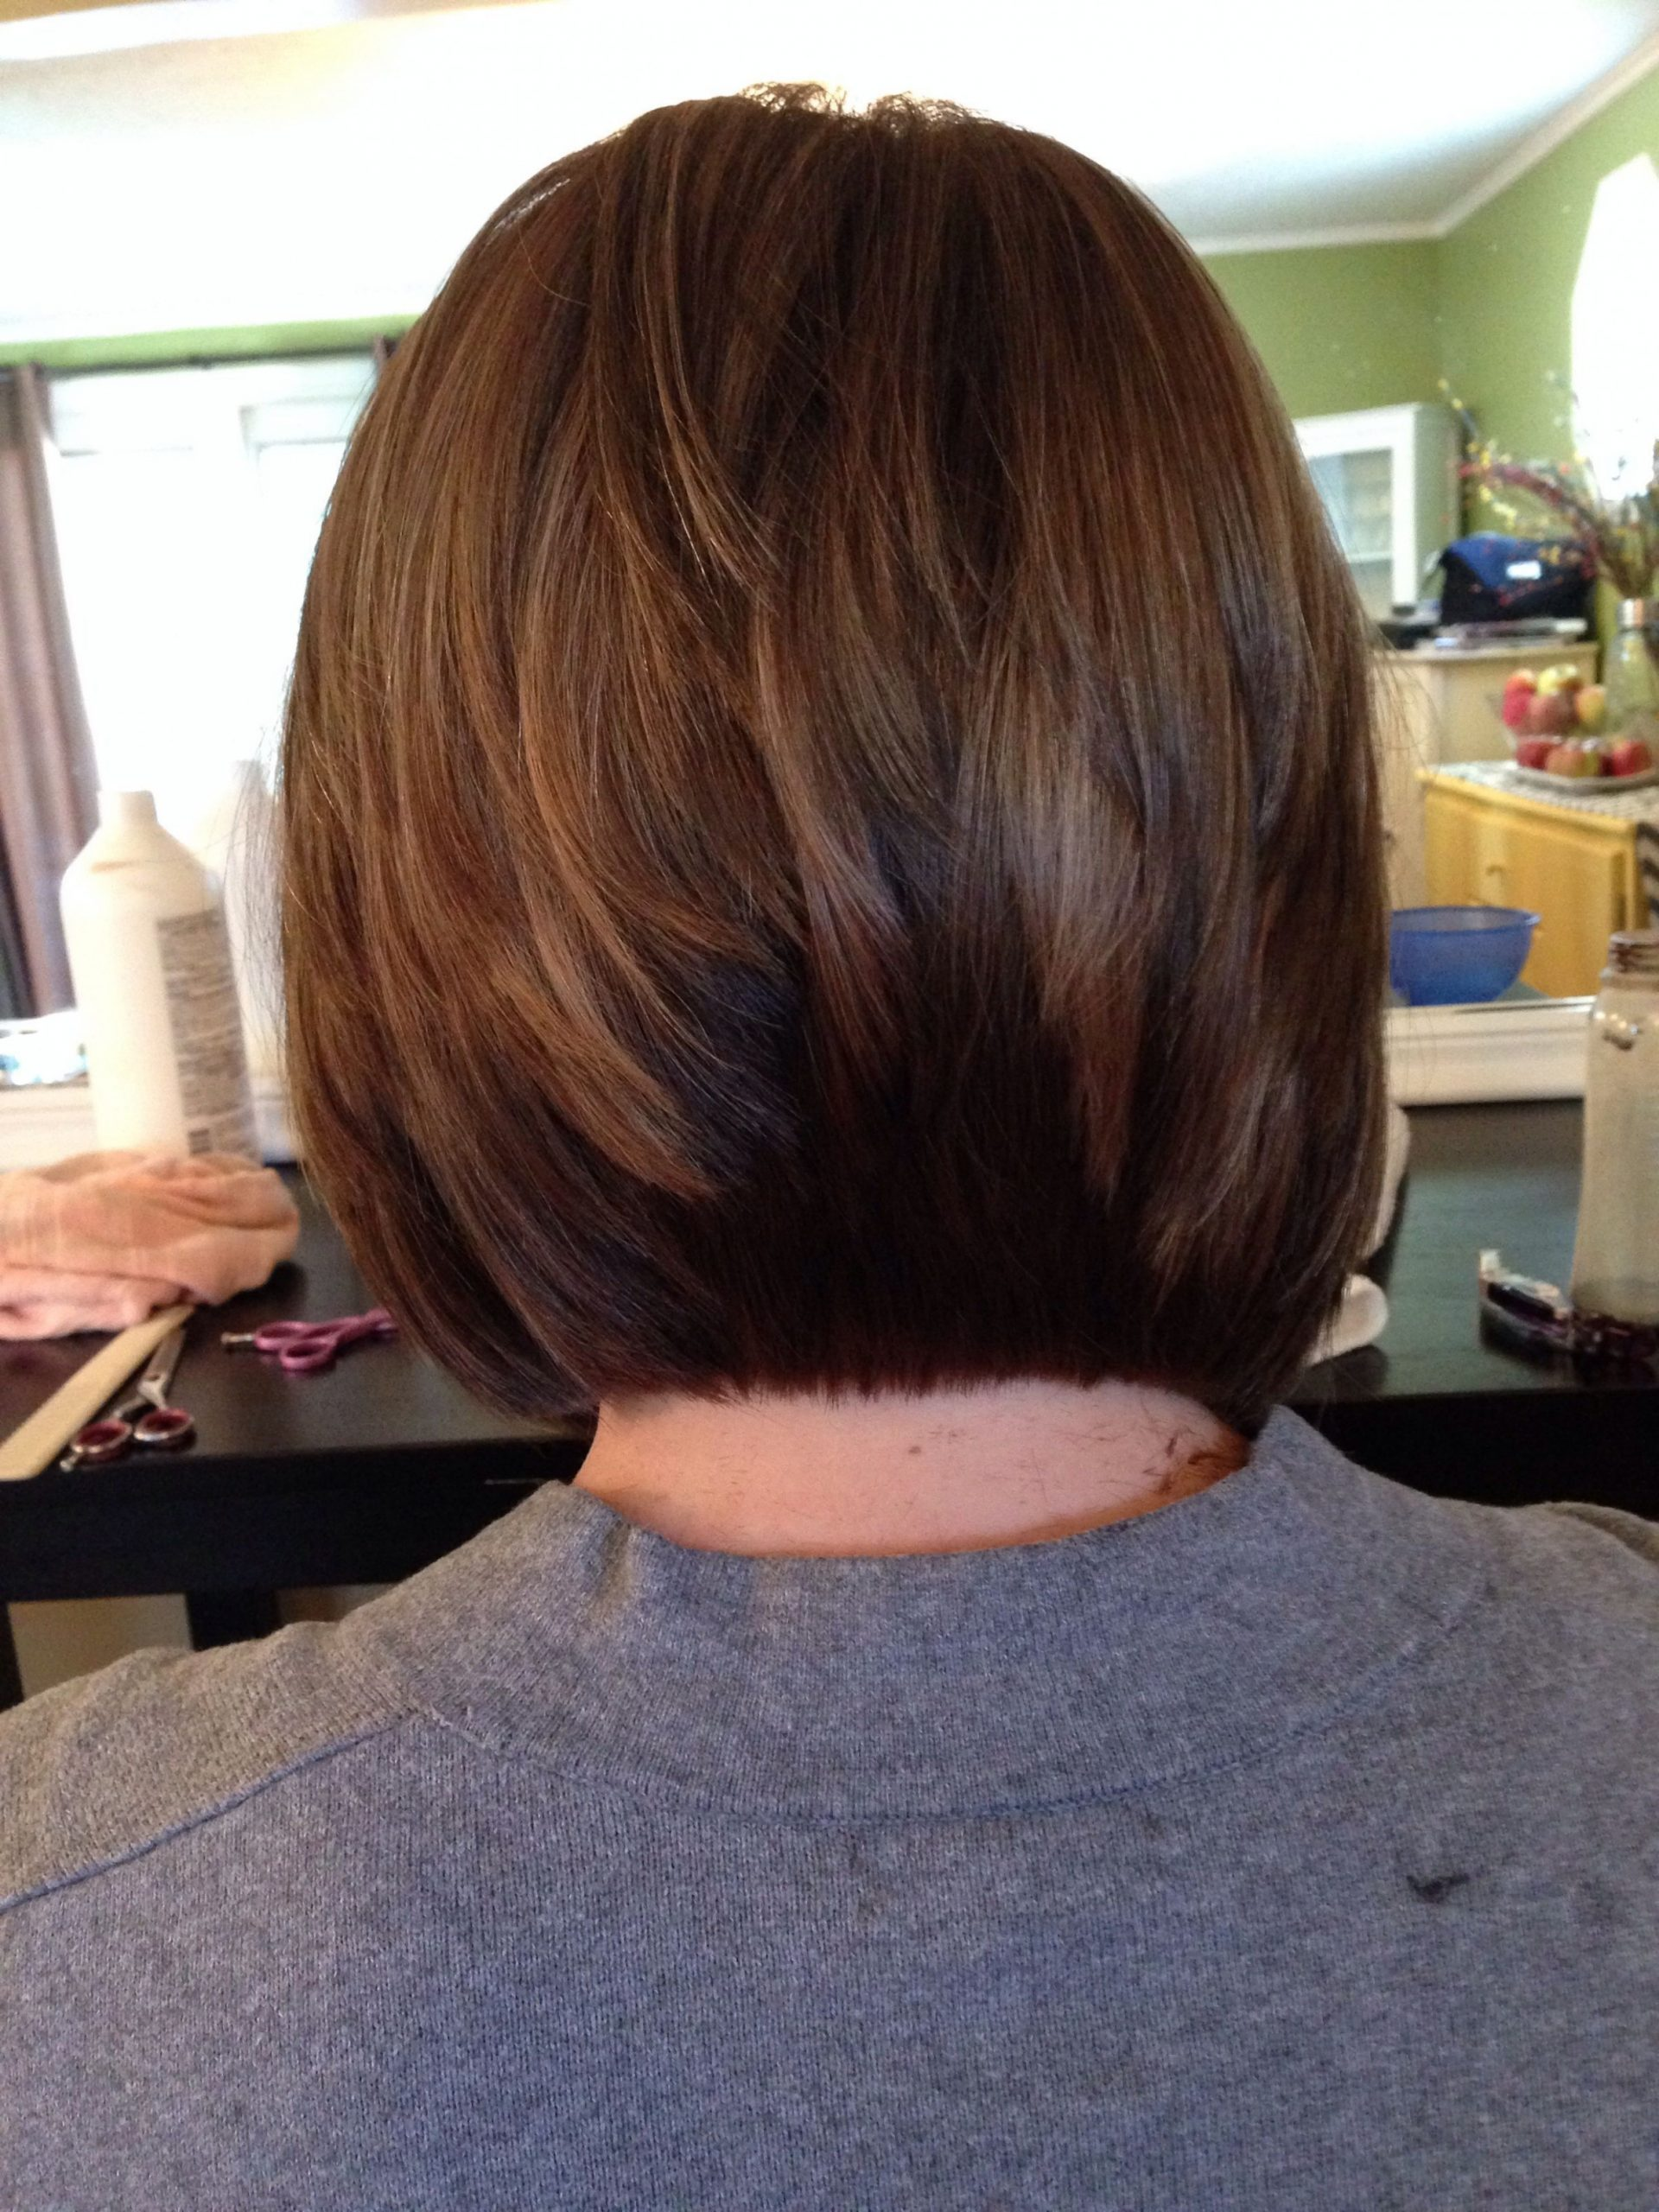 11 Bob Haircuts For Women Over 11 Hairstyles 119 Haircut Layered Bob Hairstyles For Over 40